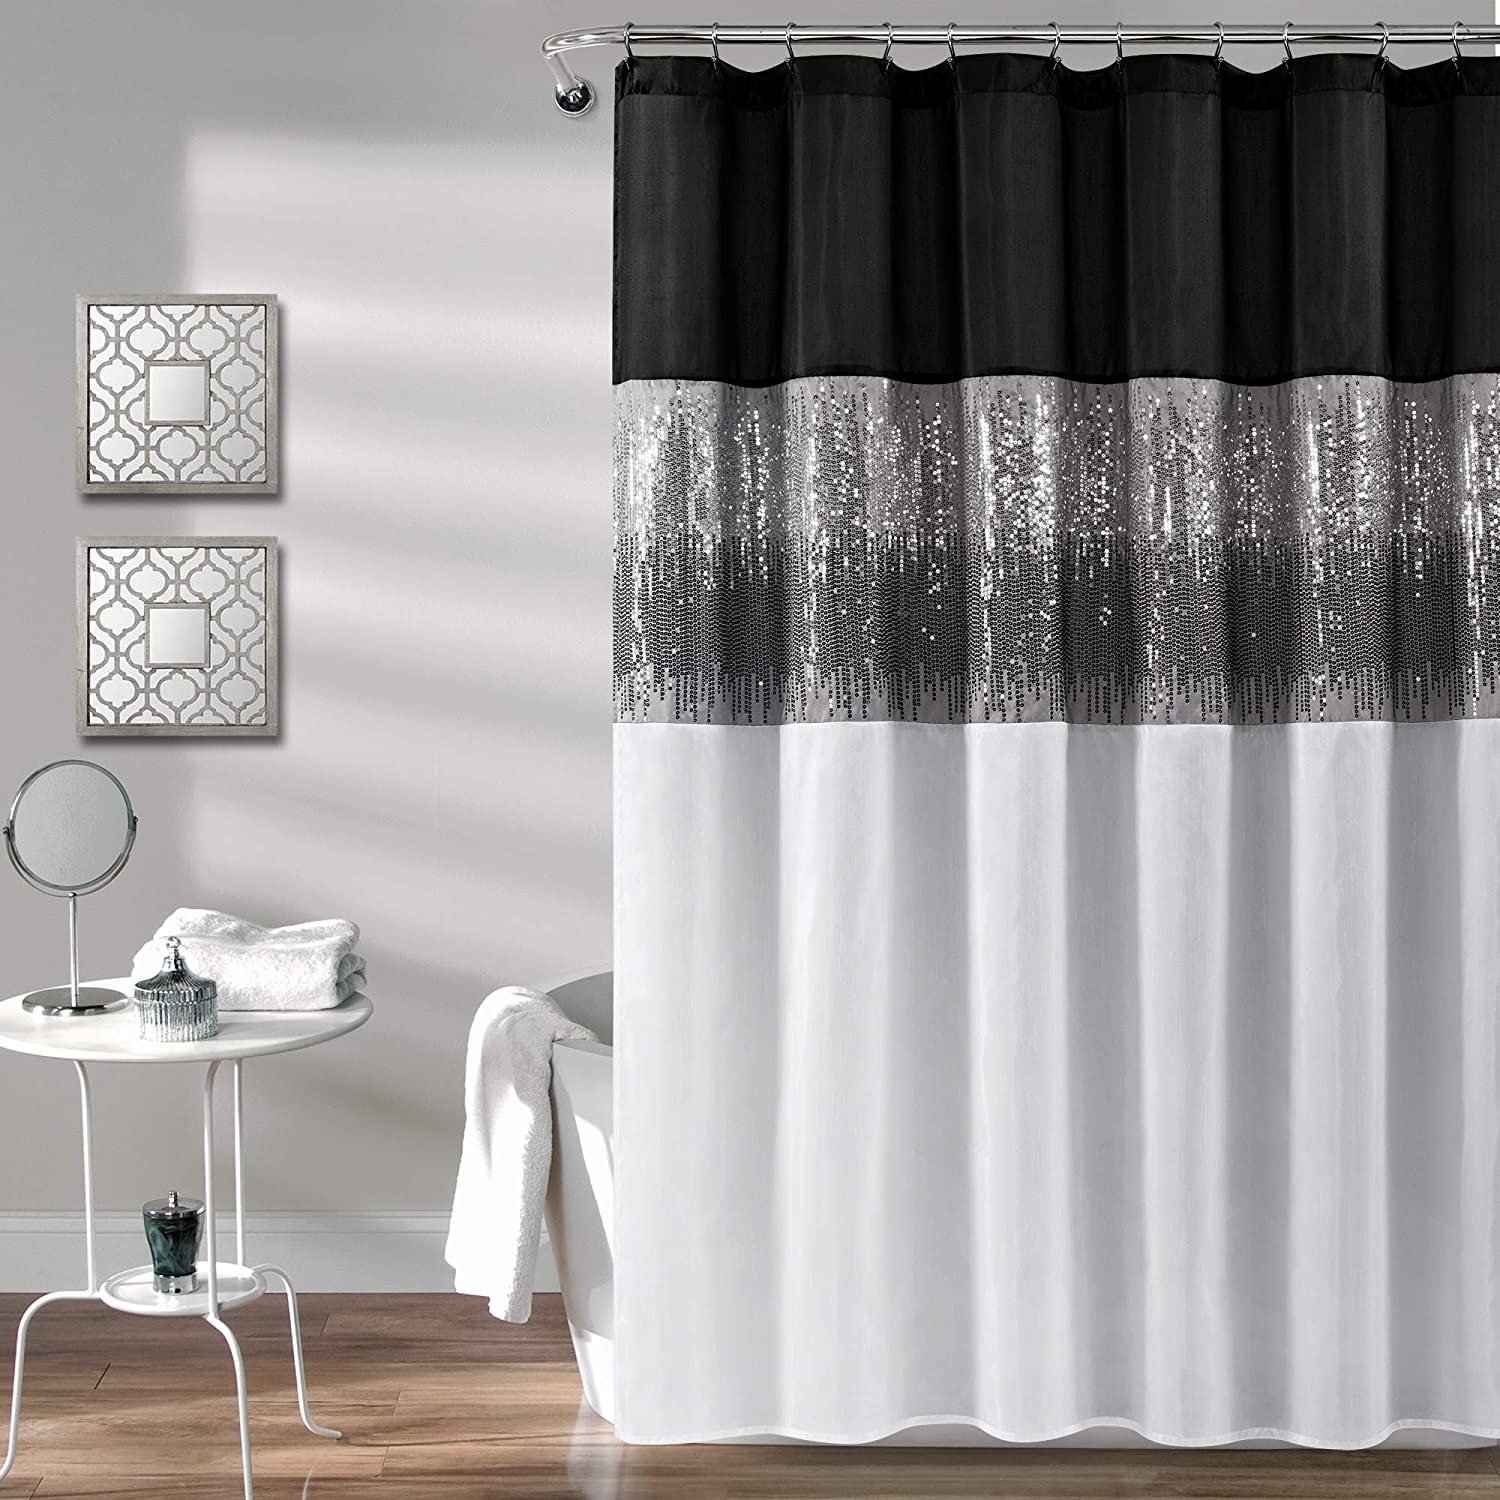 Lush Decor, Black and White Night Sky Shower Curtain | Sequin Fabric Shimmery Color Block Design for Bathroom, x 72